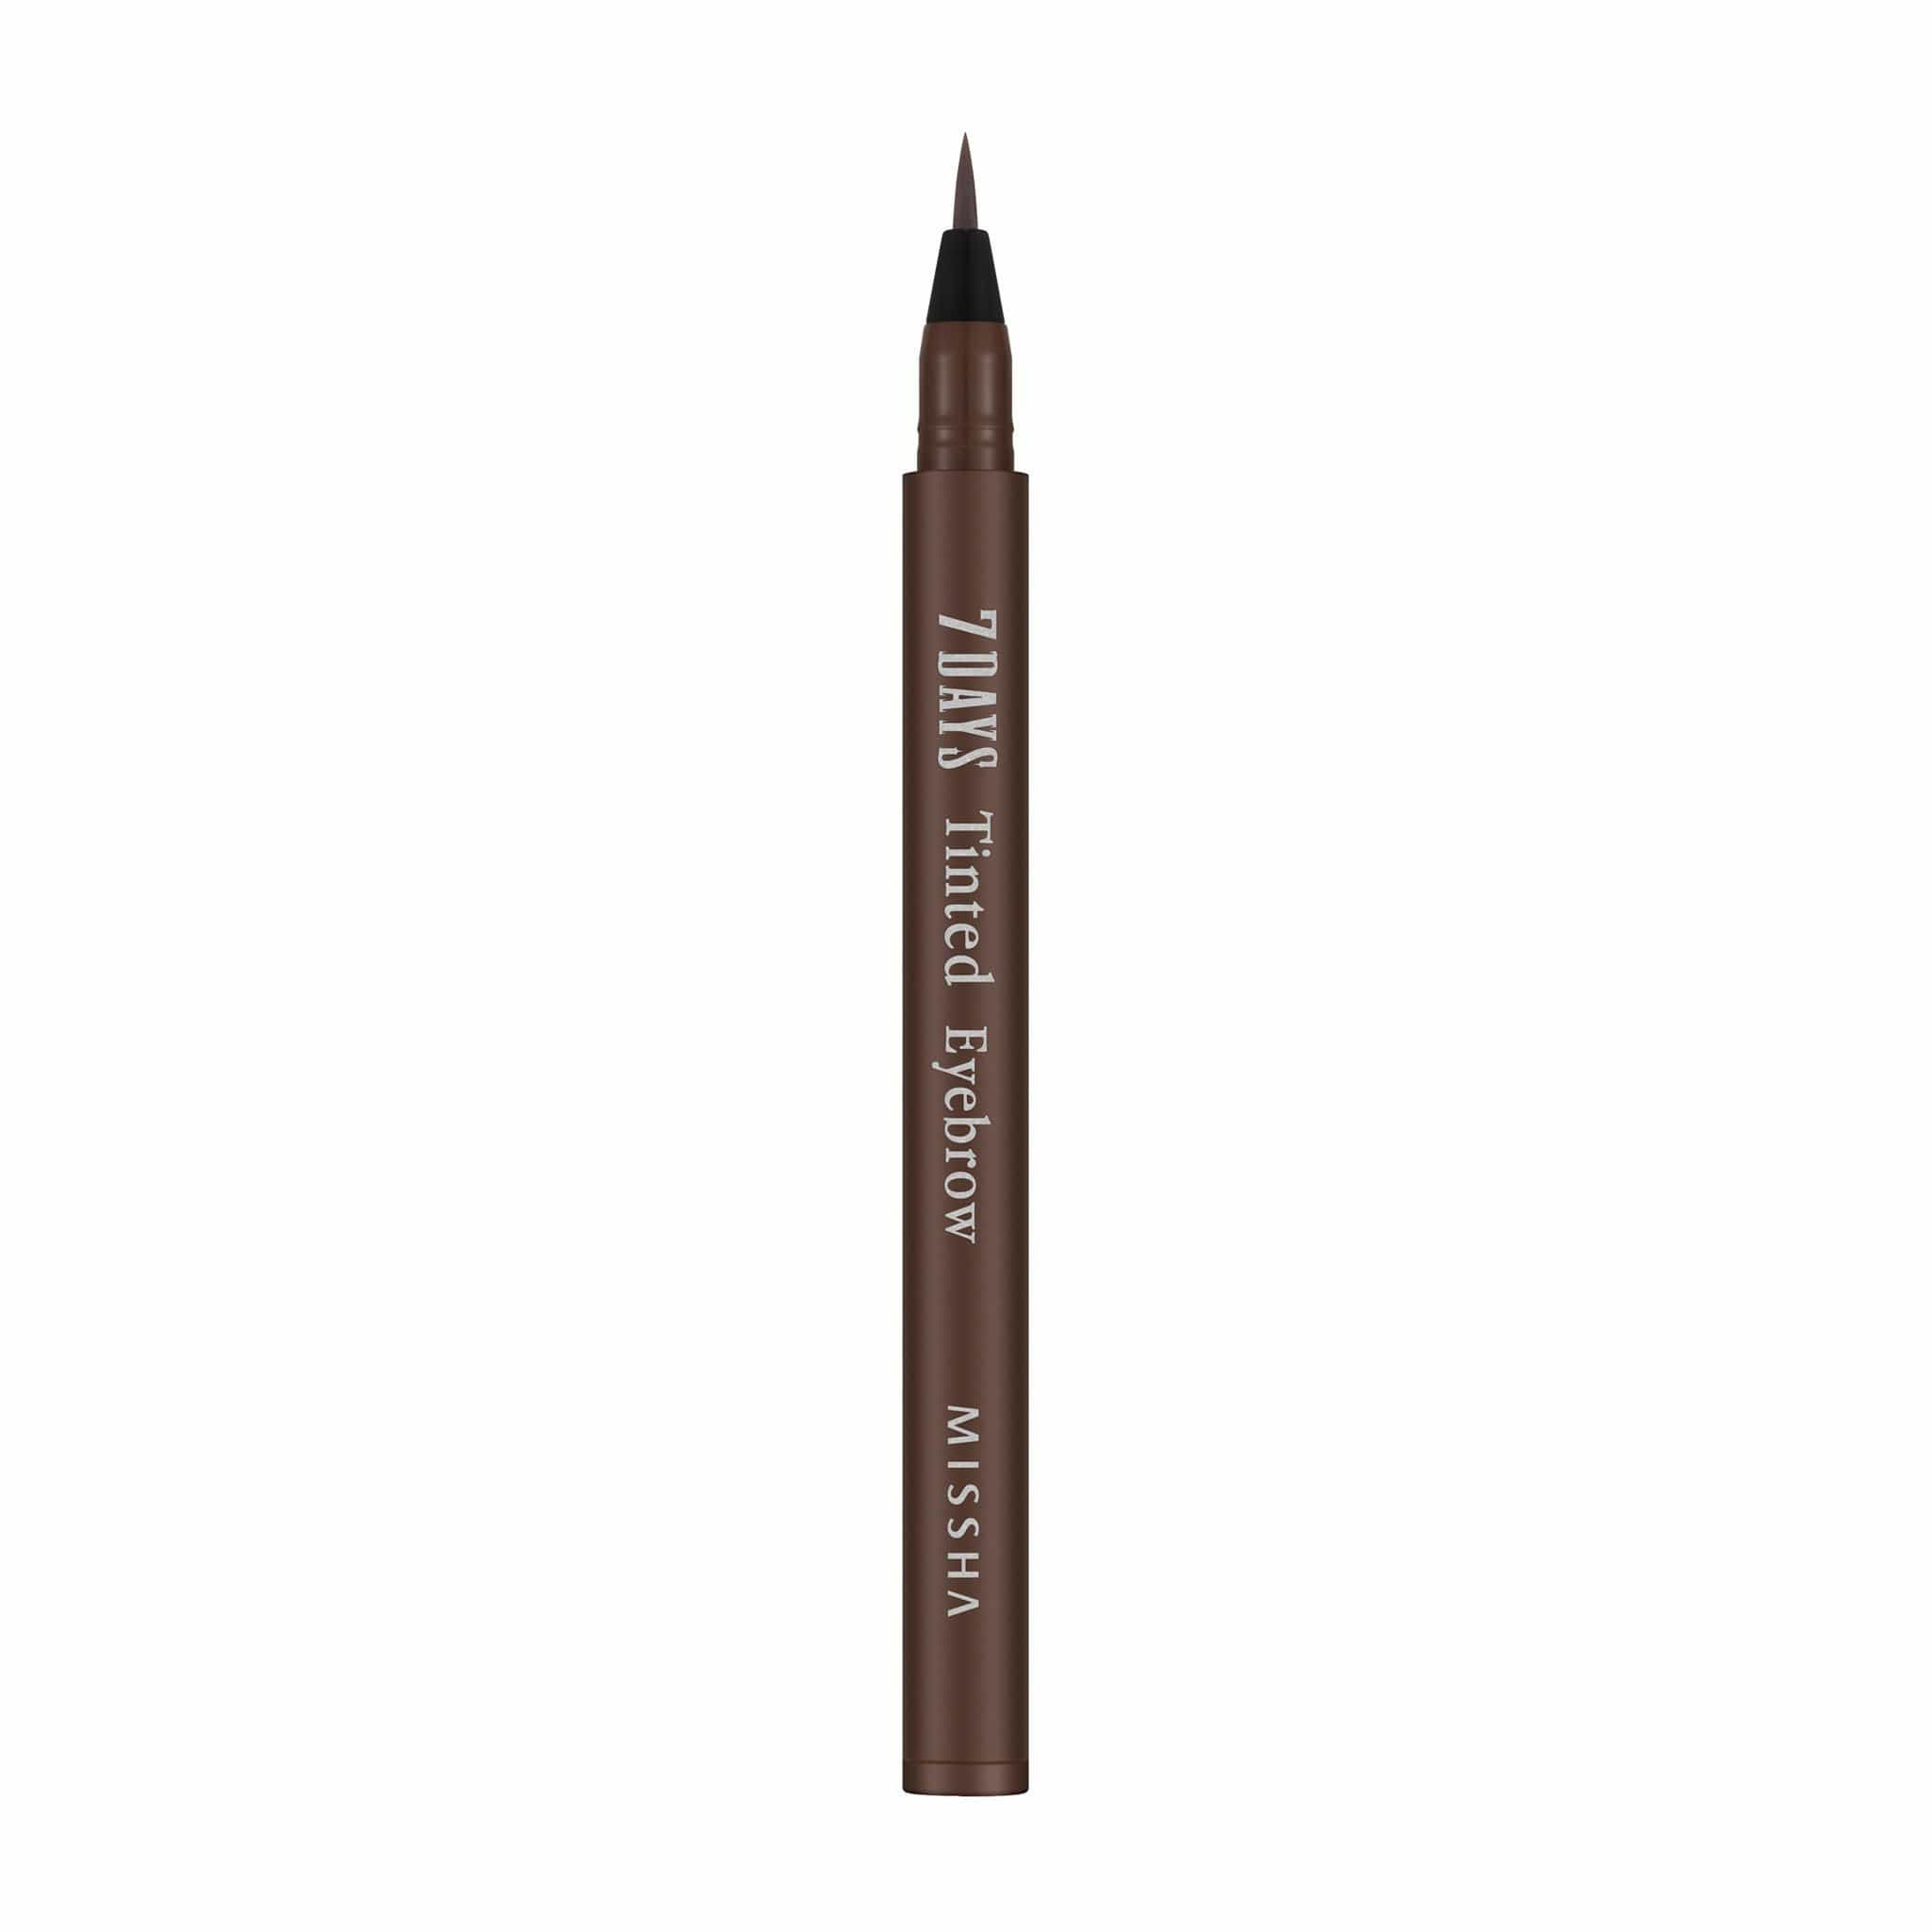 7DAYS TINTED EYEBROW - MISSHA